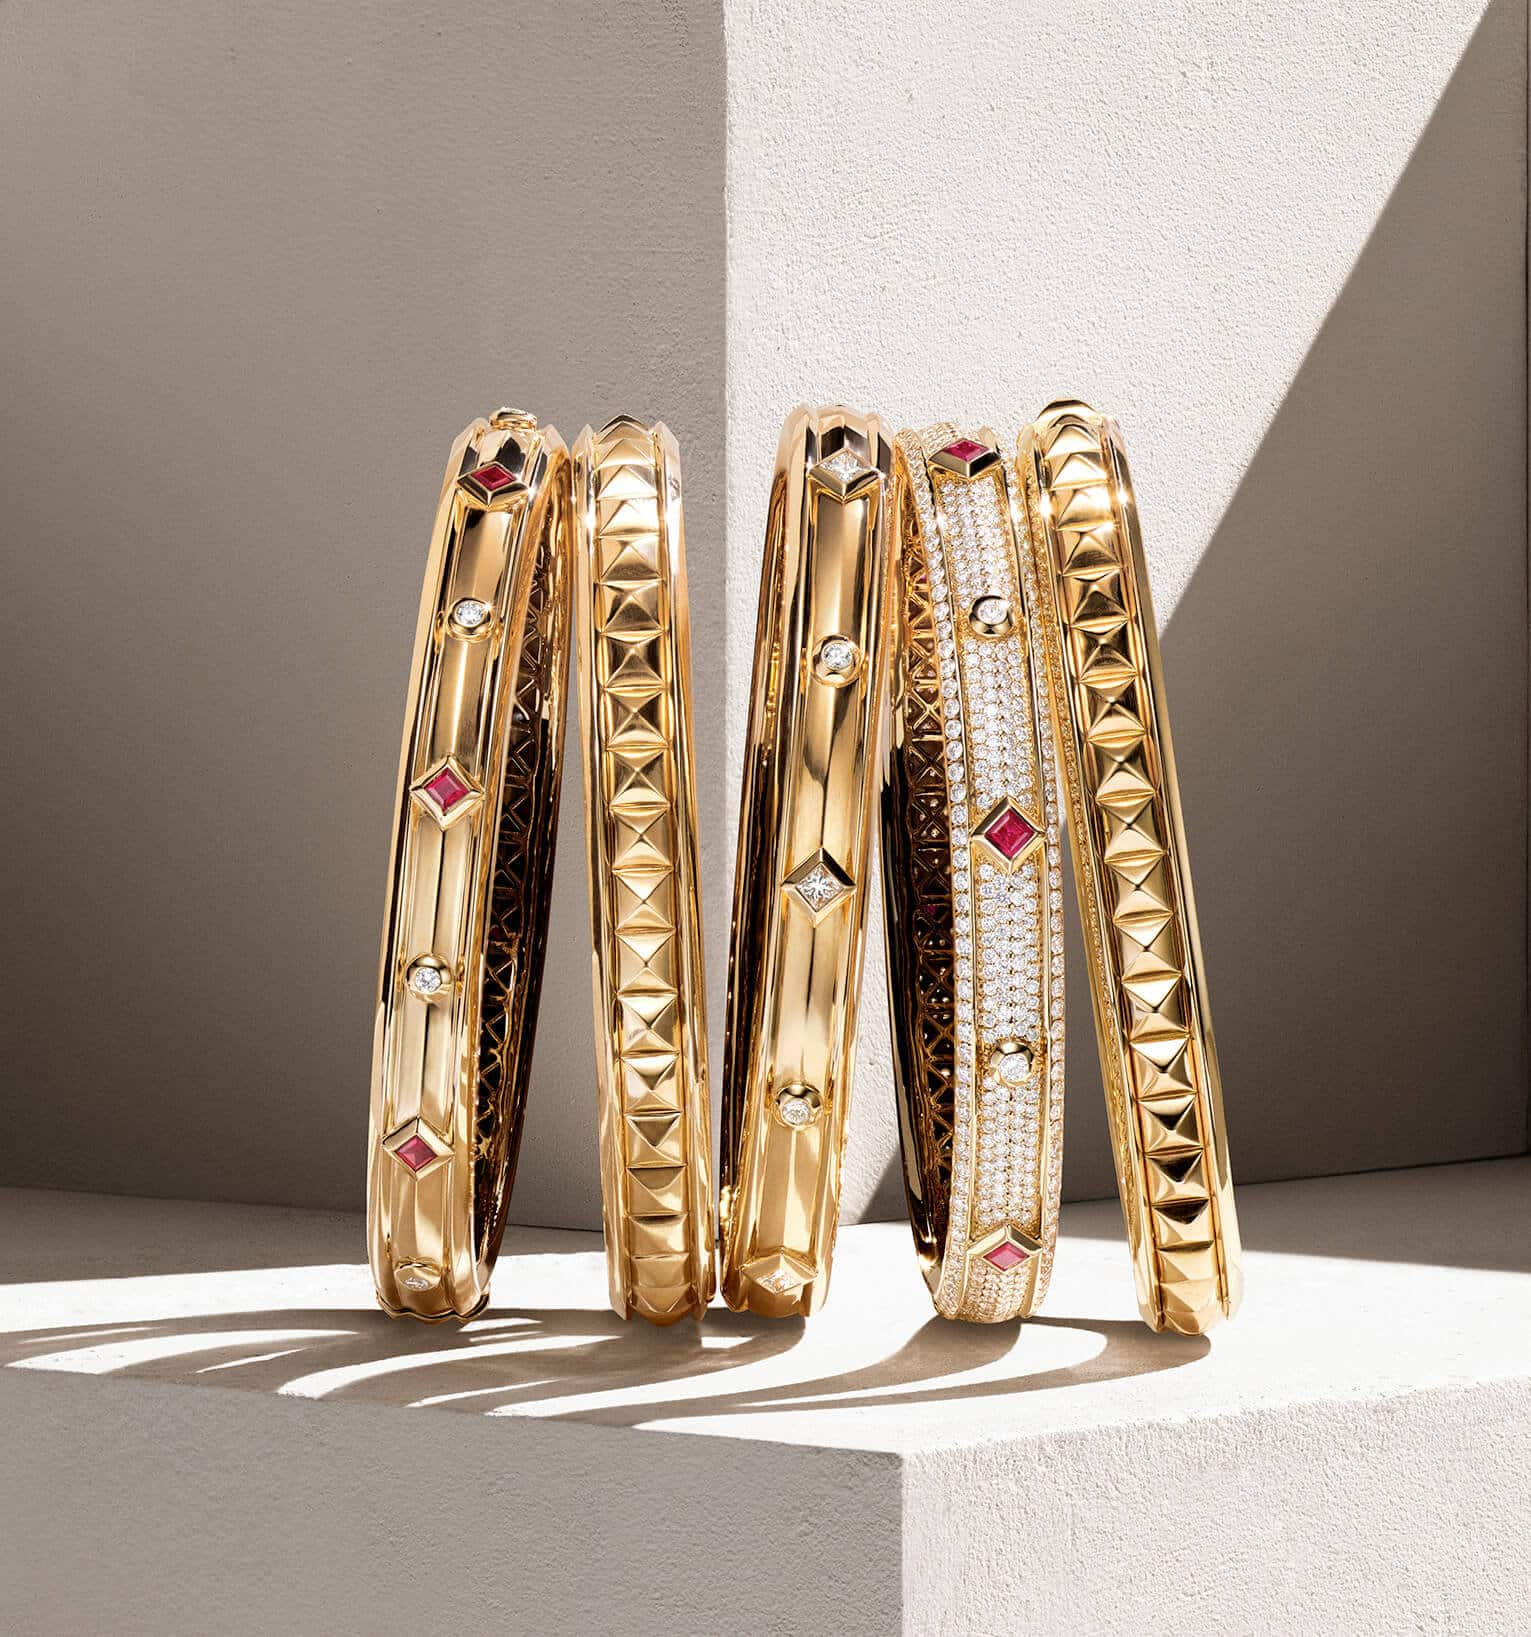 A color photo shows a horizontal stack of five David Yurman bracelets from the Modern Renaissance collection leaning against each other on top of a beige-hued stone shelf with hard diagonal shadows. The women's jewelry is crafted from 18K yellow gold with or without white diamonds and rubies.